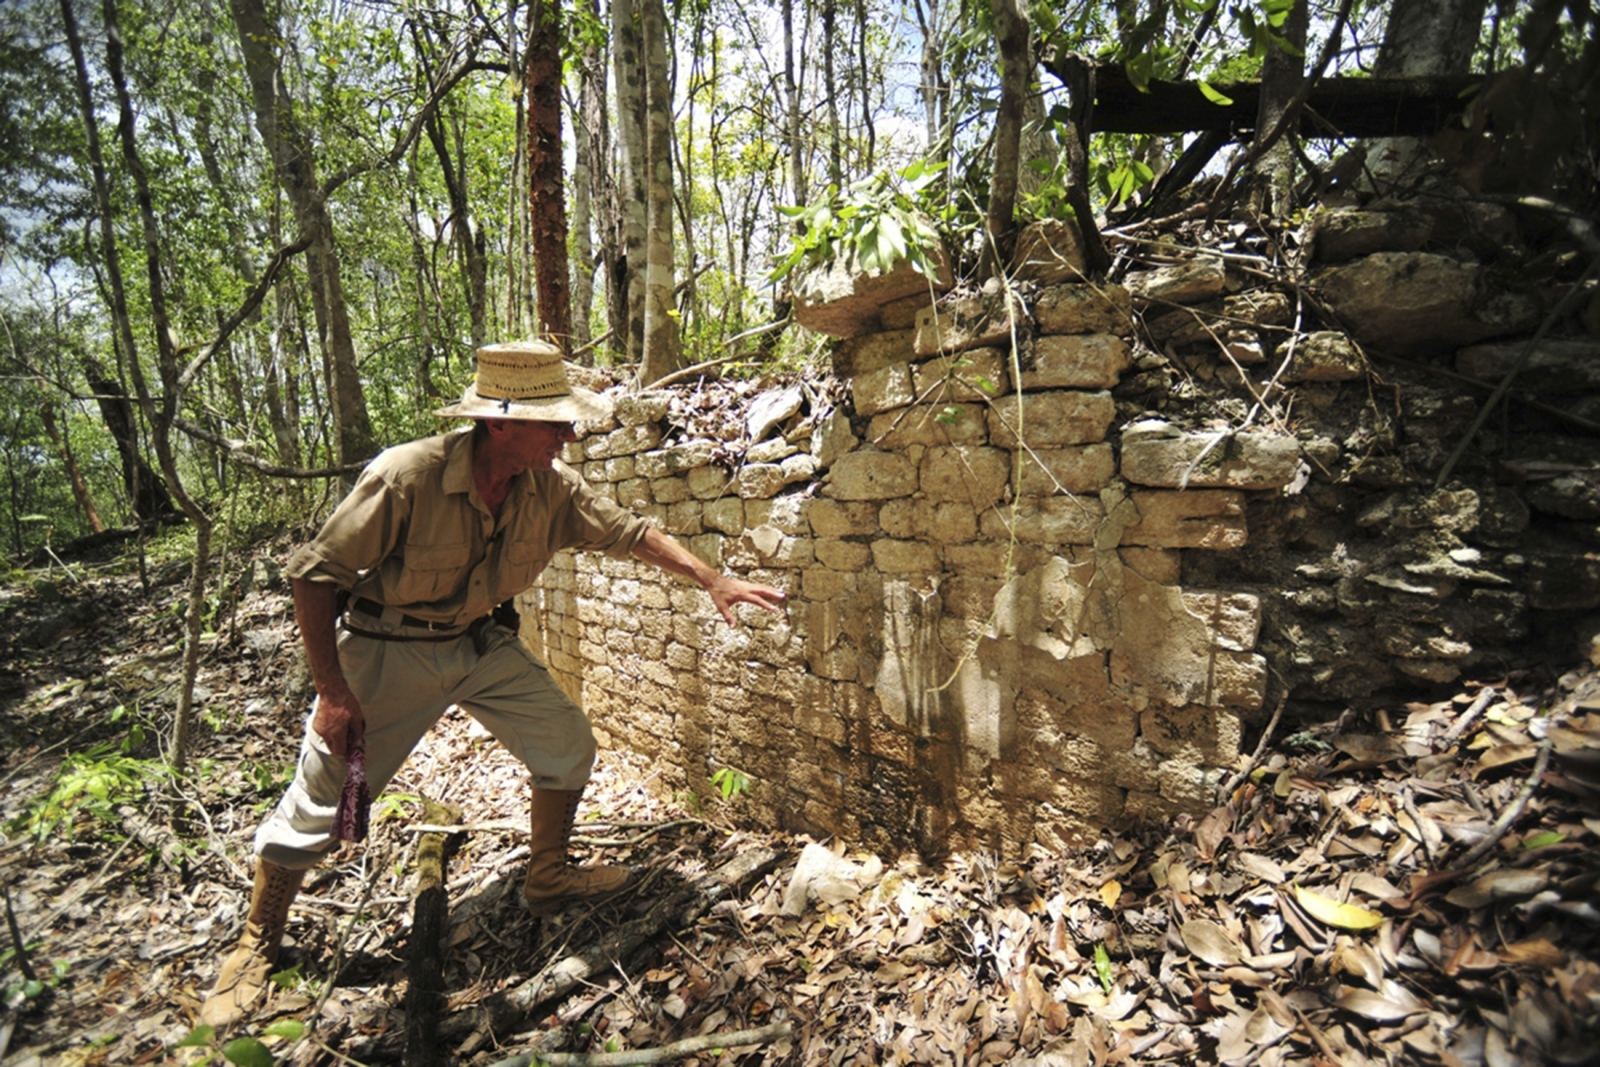 A National Institute of Anthropology and History (INAH) worker shows the remains of a building at the newly discovered ancient Maya city Chactun in Yucatan peninsula